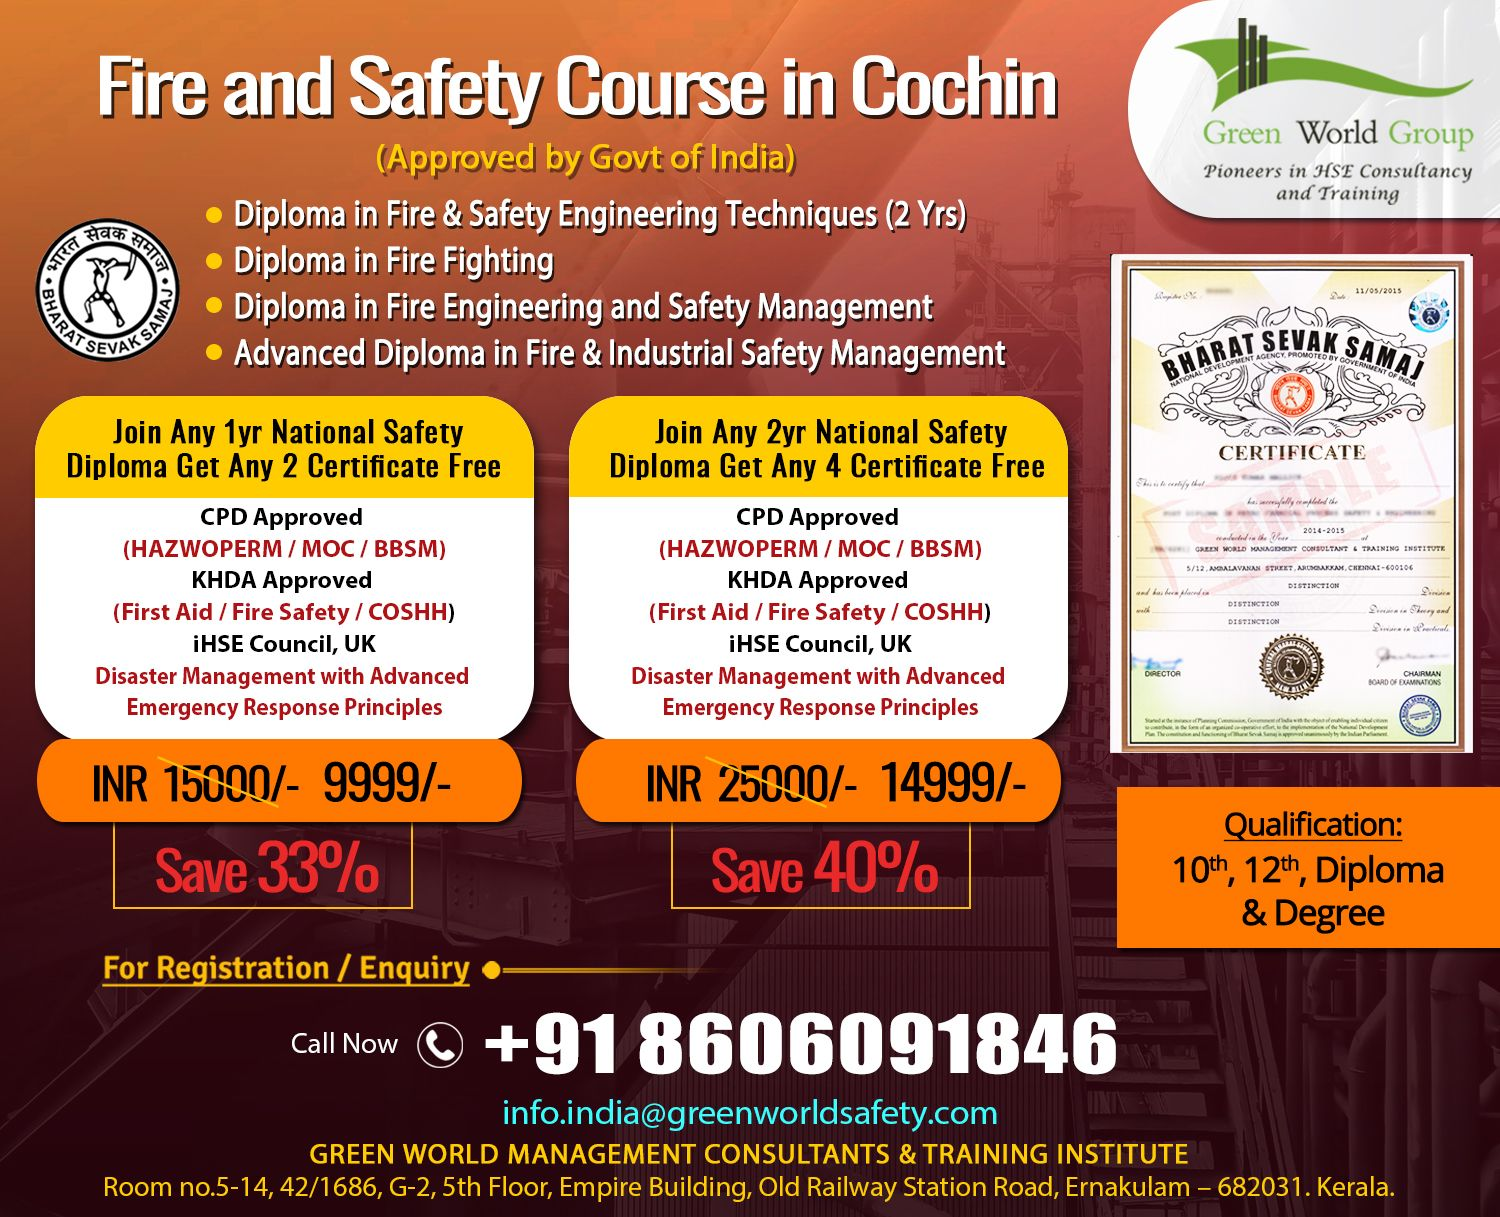 Fire and Safety Course in Kerala Safety courses, Fire